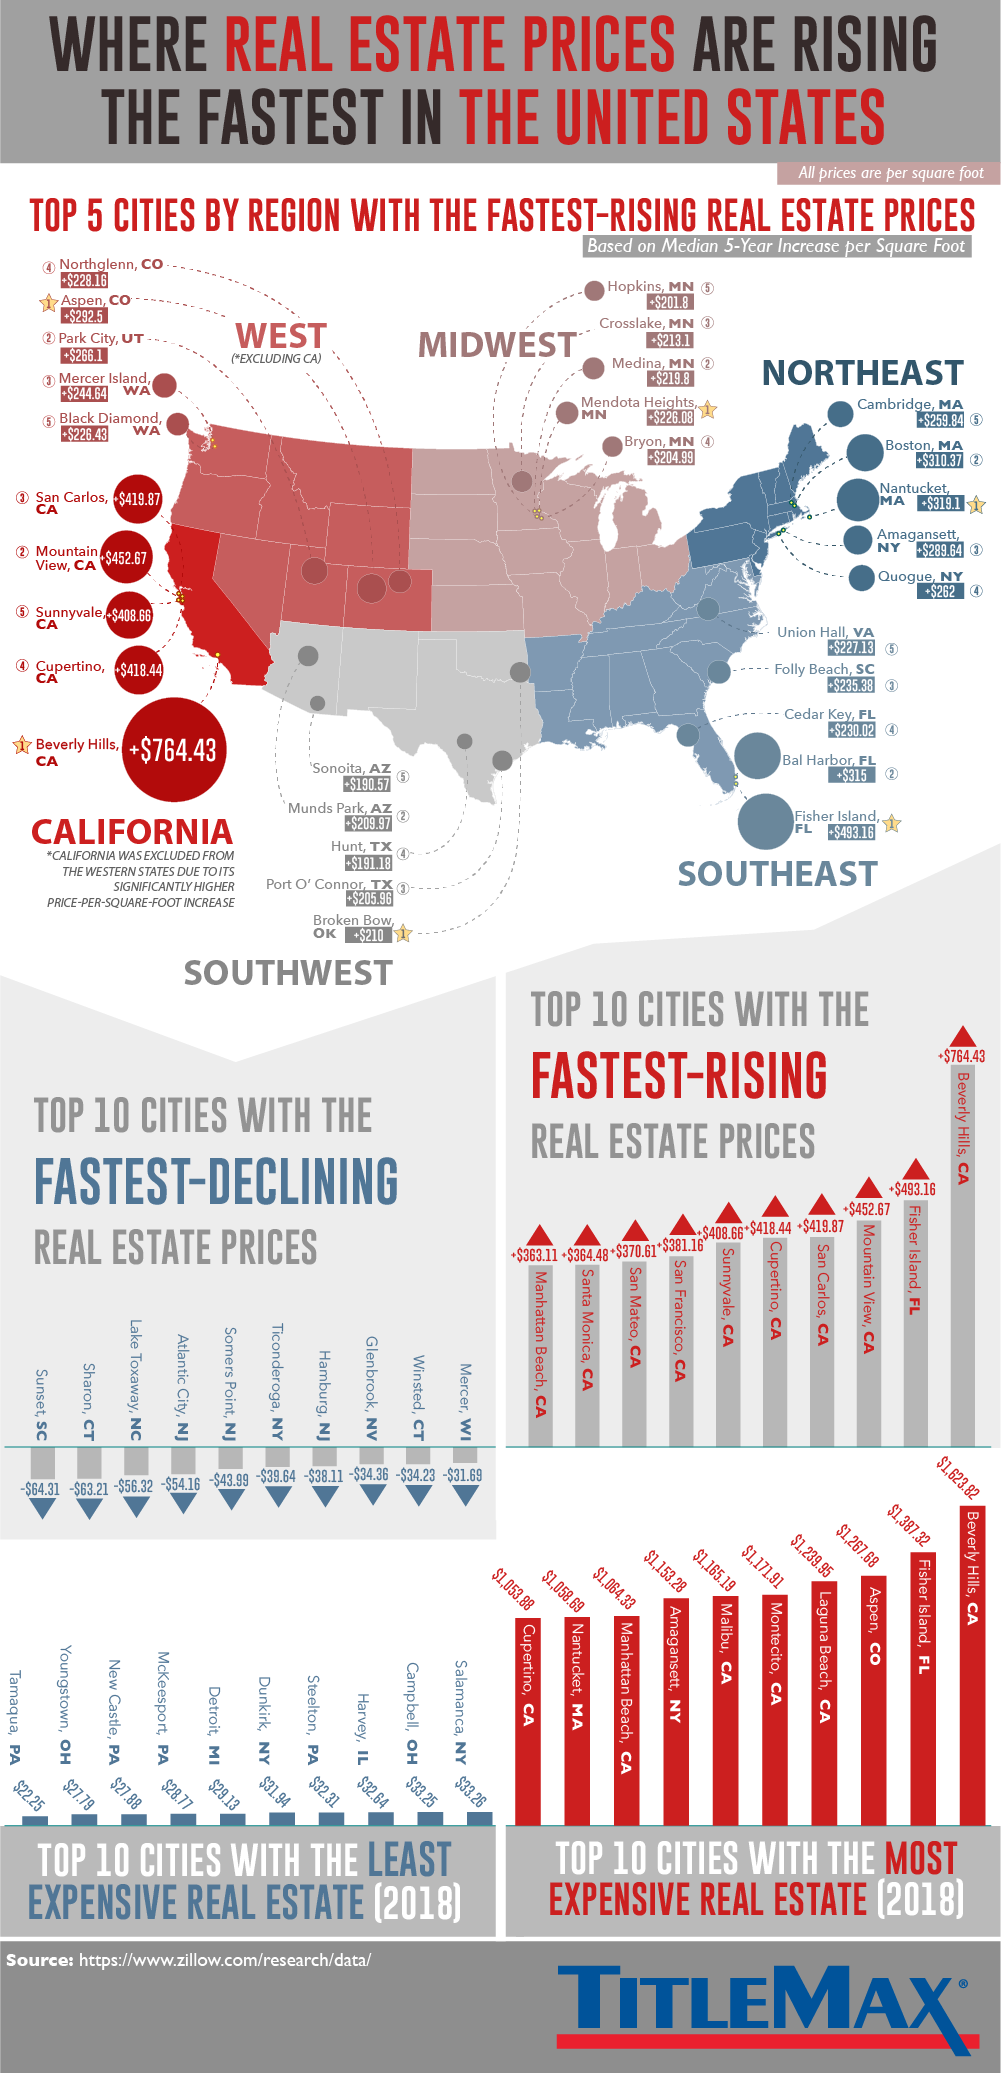 Where real estate prices are rising fastest in the US